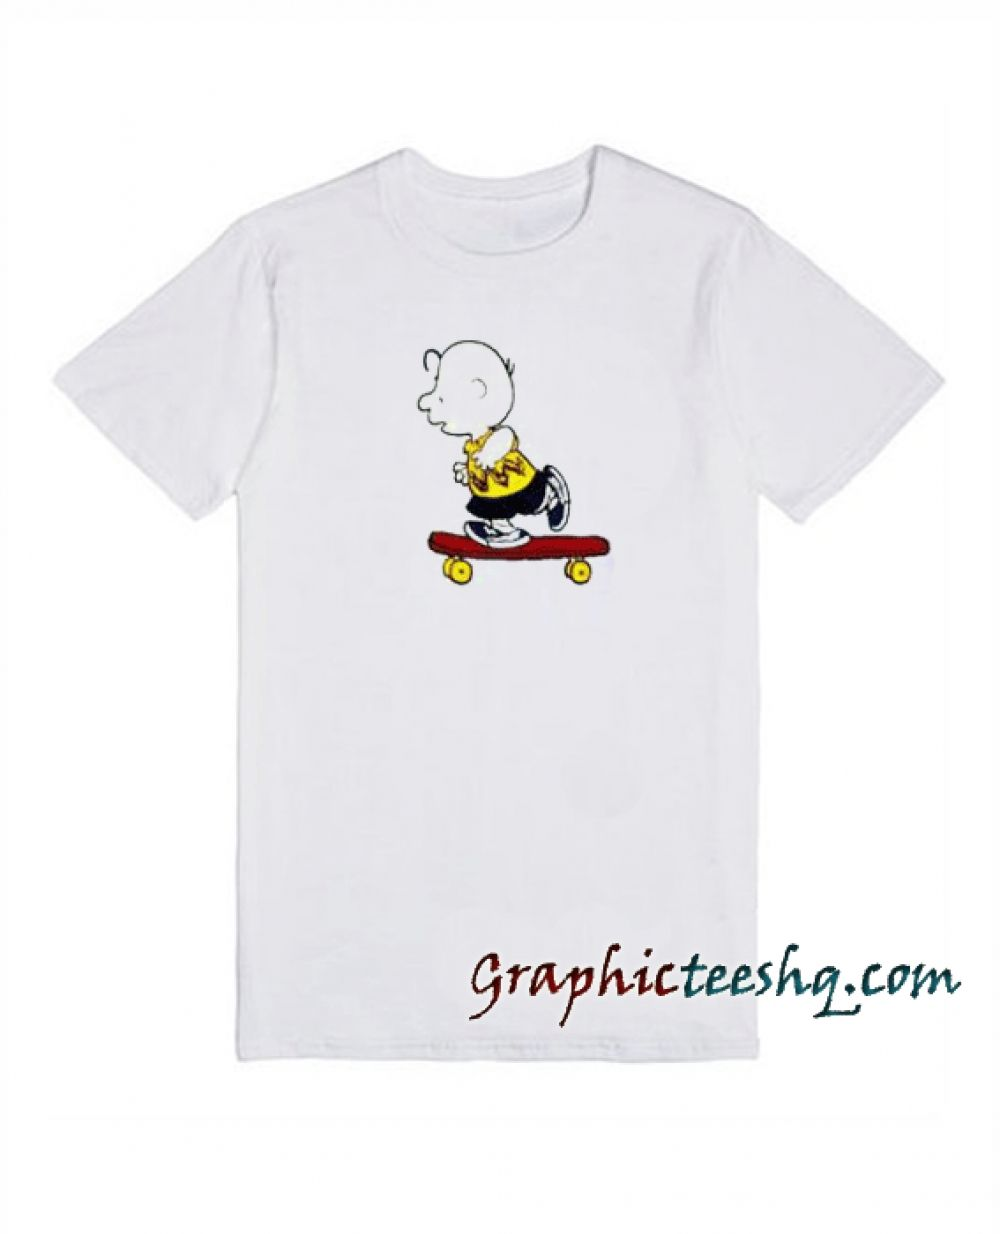 b5d5ee2b3e2b0d Vans x Peanuts Good Grief Tee Shirt Price  13.50  style  fashion  tshirts   tee  tshirtdesign instafashion  black  cute  art  amazing funny   webstagram  lol ...